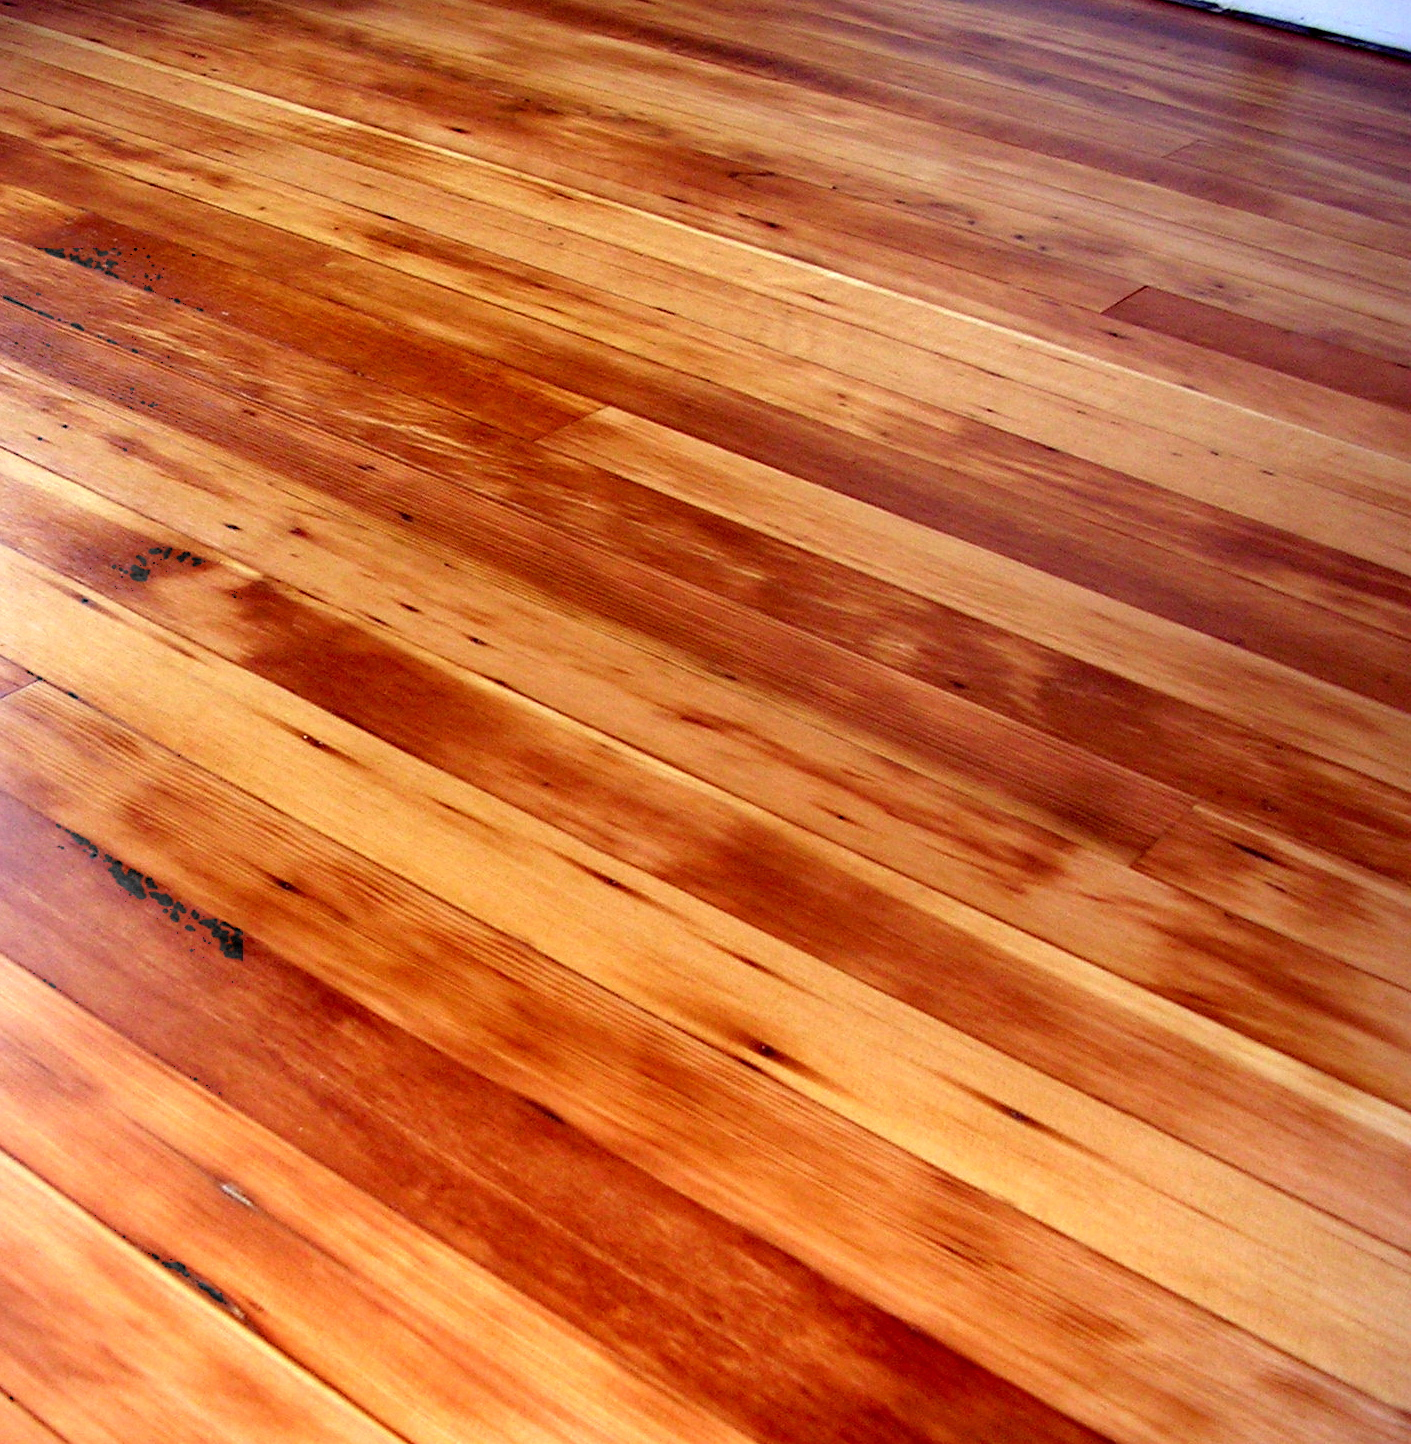 veneers rwv species wood floors fir douglas real flooring fc